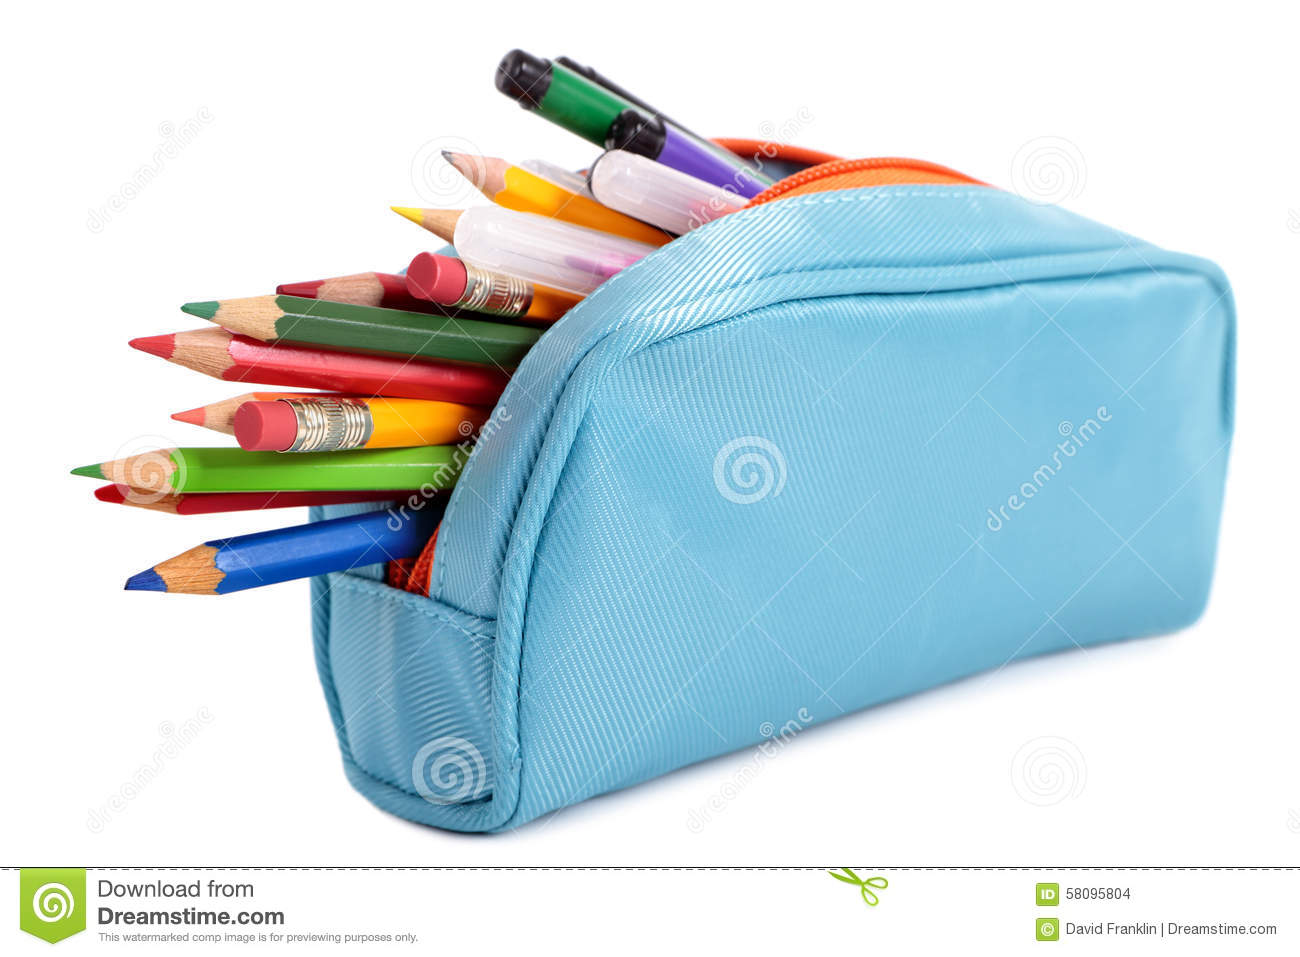 Pencil case clipart free picture library download Pencil Case Full With Pens And Pencils, Isolated On White ... picture library download